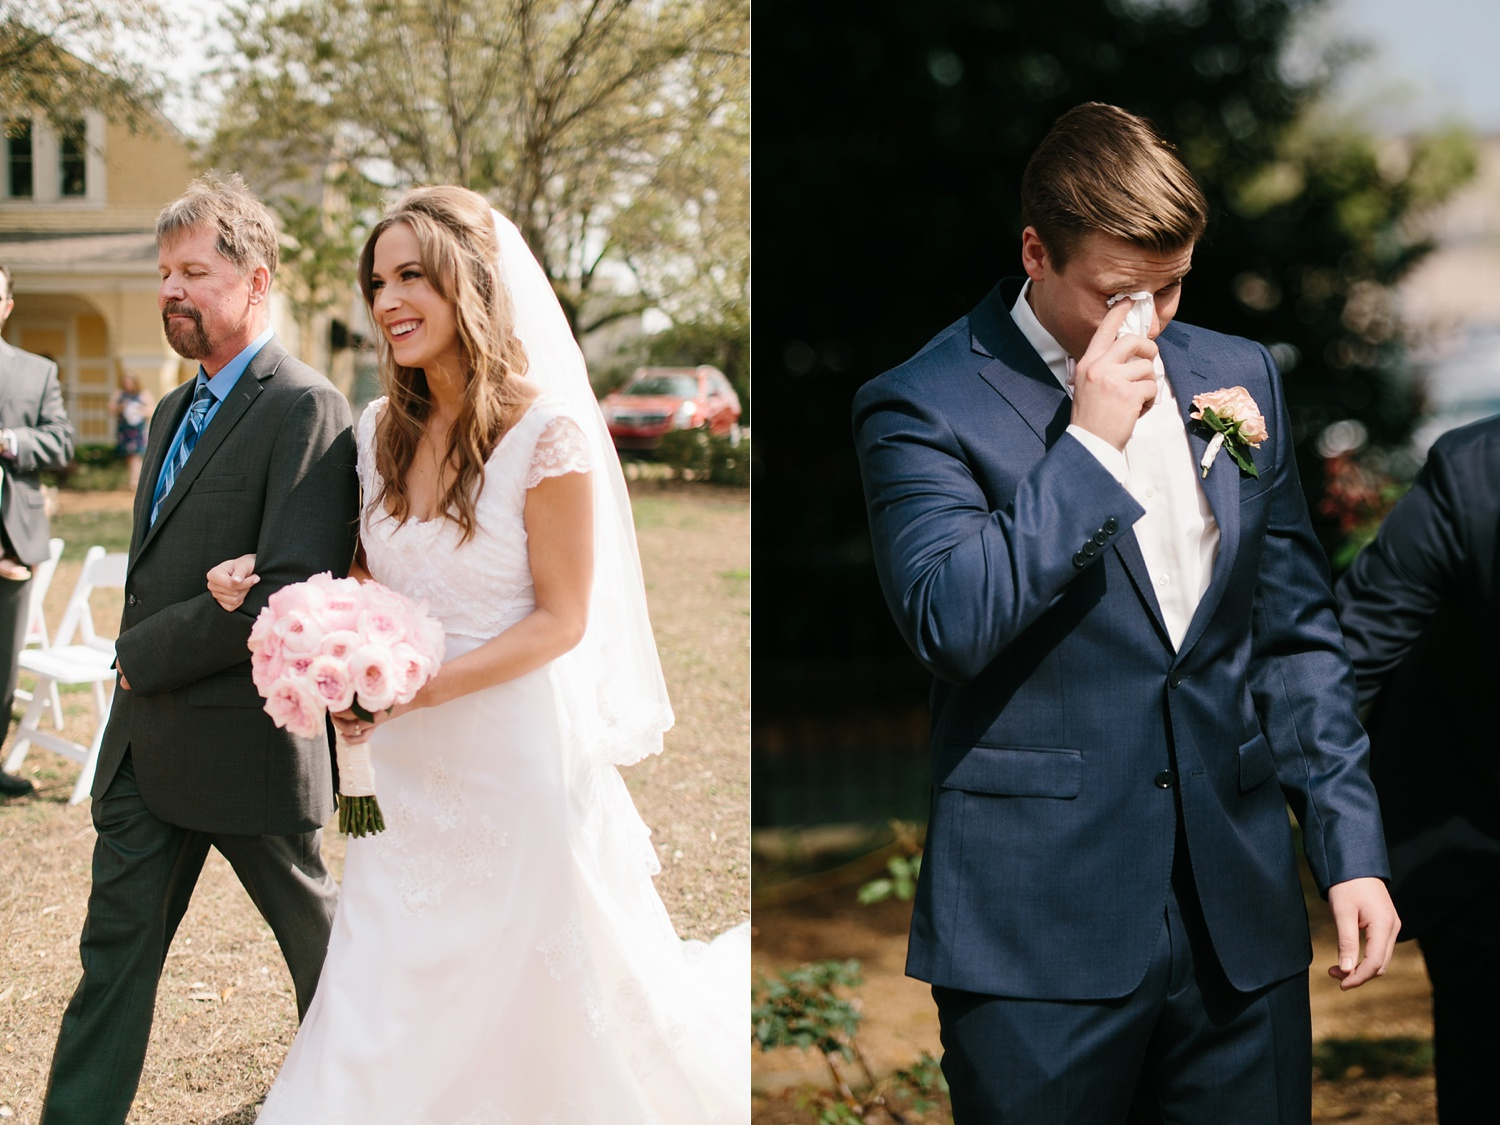 Amber + Daniel an intimate, simple, spring ceremony at Heard Craig Center and reception at Gather in McKinney, Texas by North Texas Wedding Photographer Rachel Meagan Photography 053